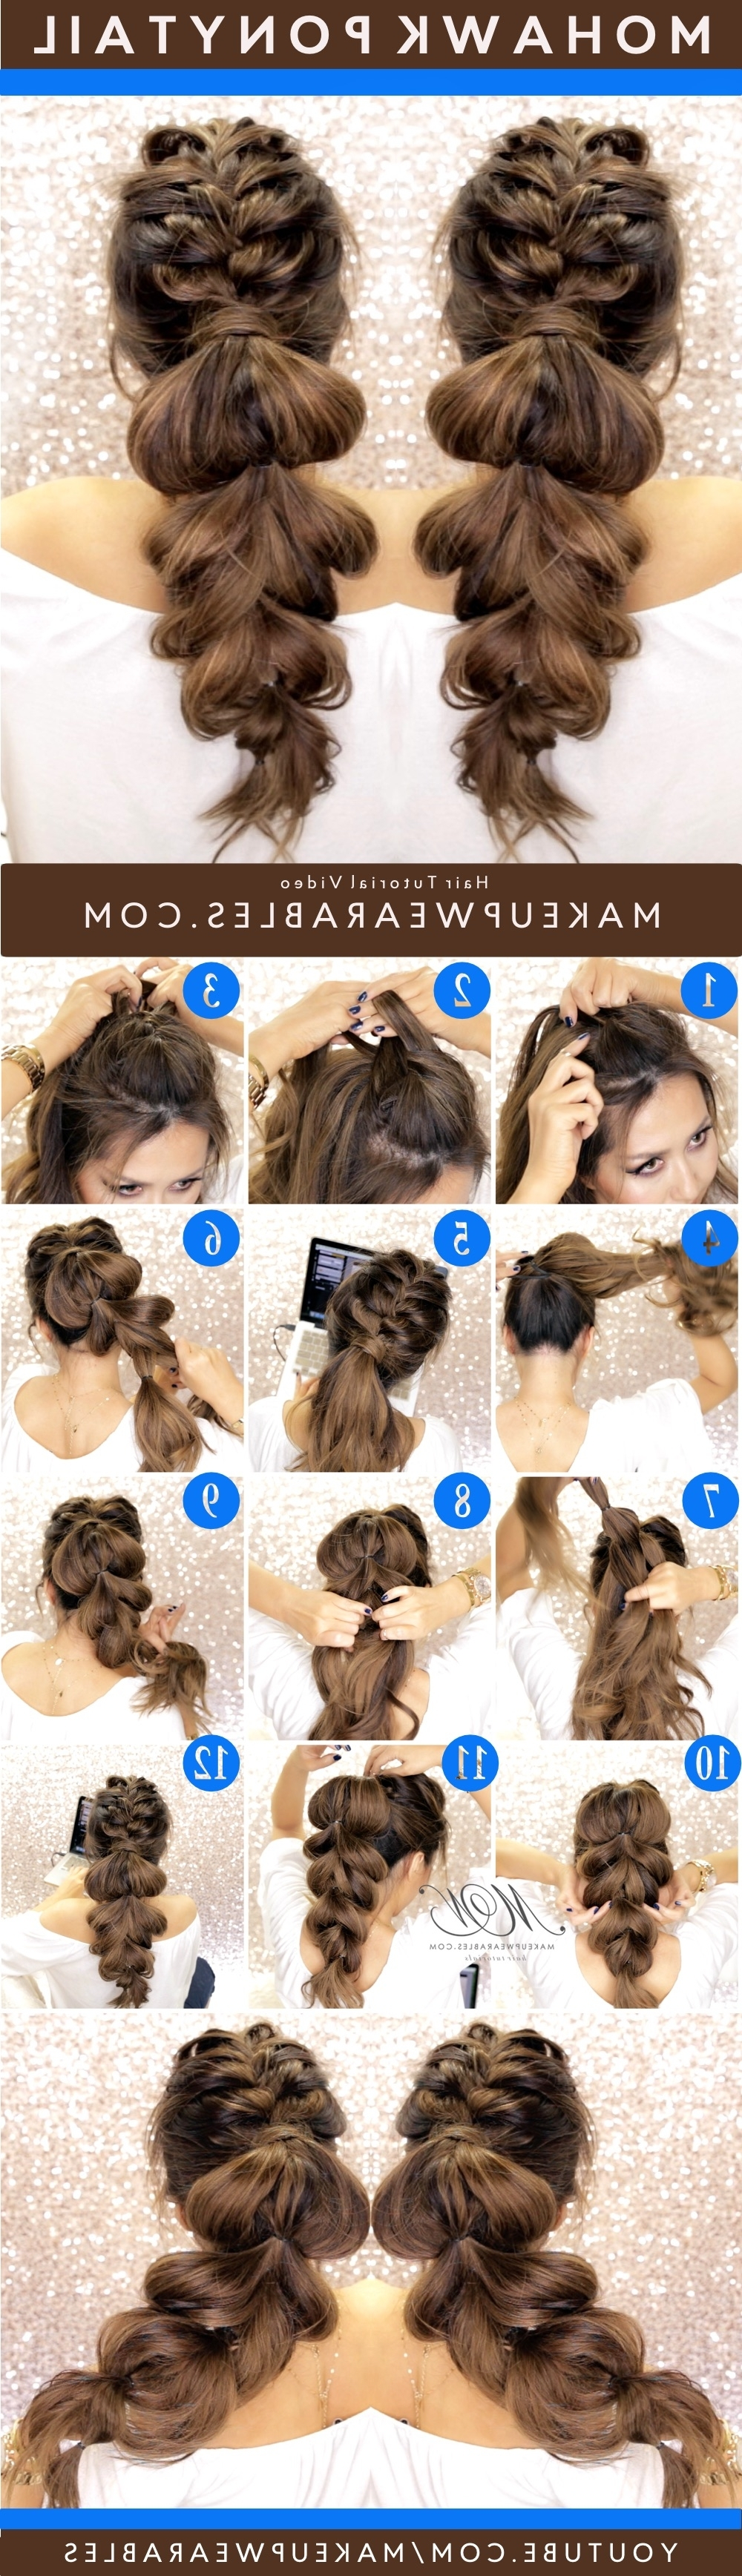 Hair Style Tutorial – Makeupwearables Regarding Current Mohawk Braid Into Pony Hairstyles (View 14 of 20)